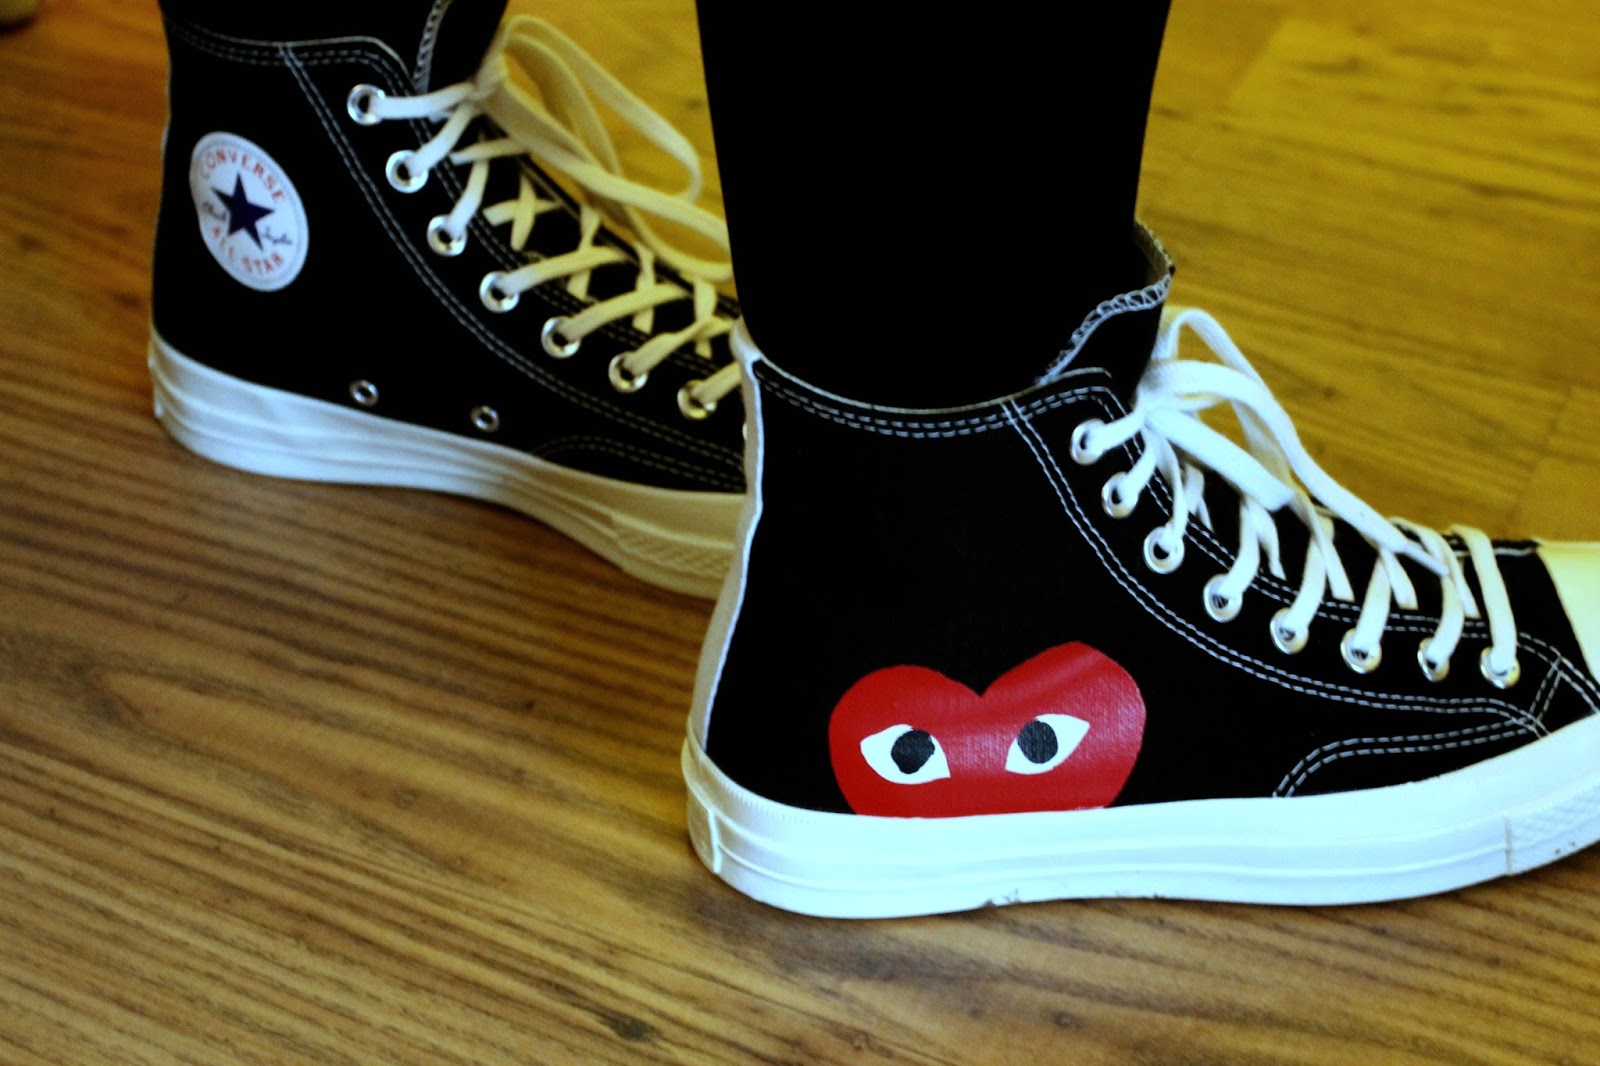 cdg converse high black